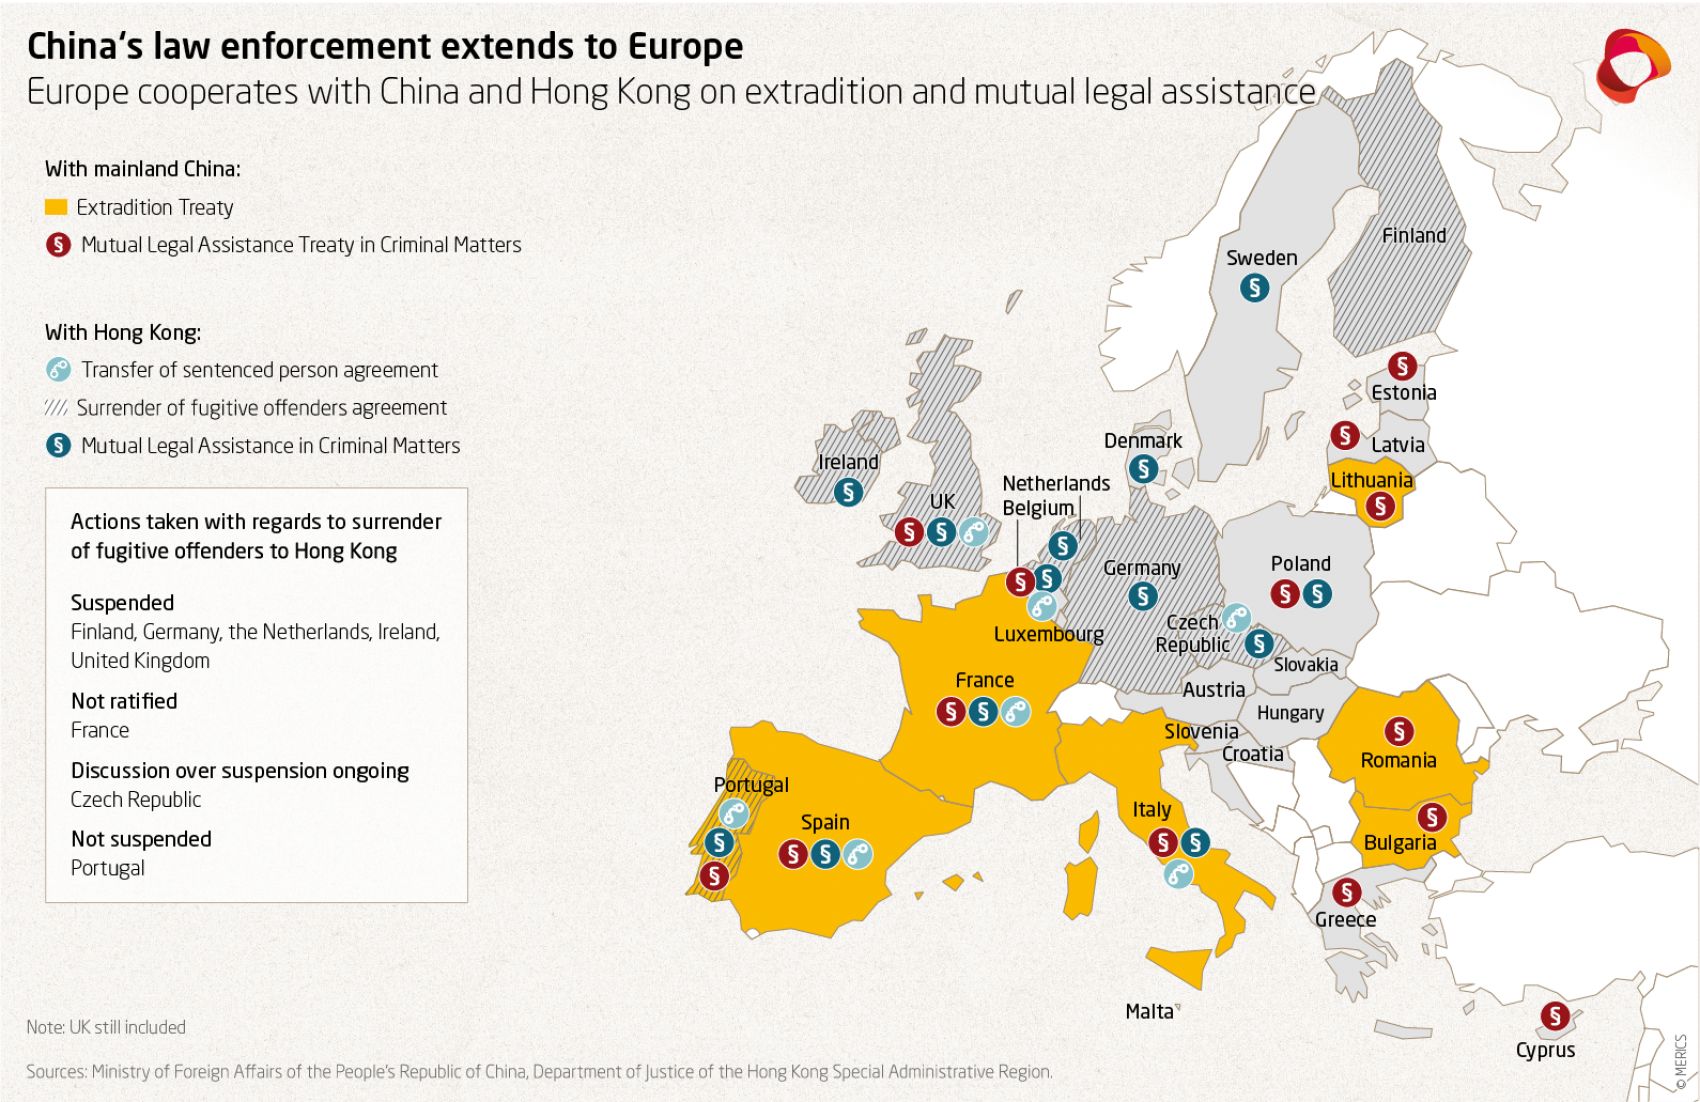 Map showing EU-China cooperation on law enforcement